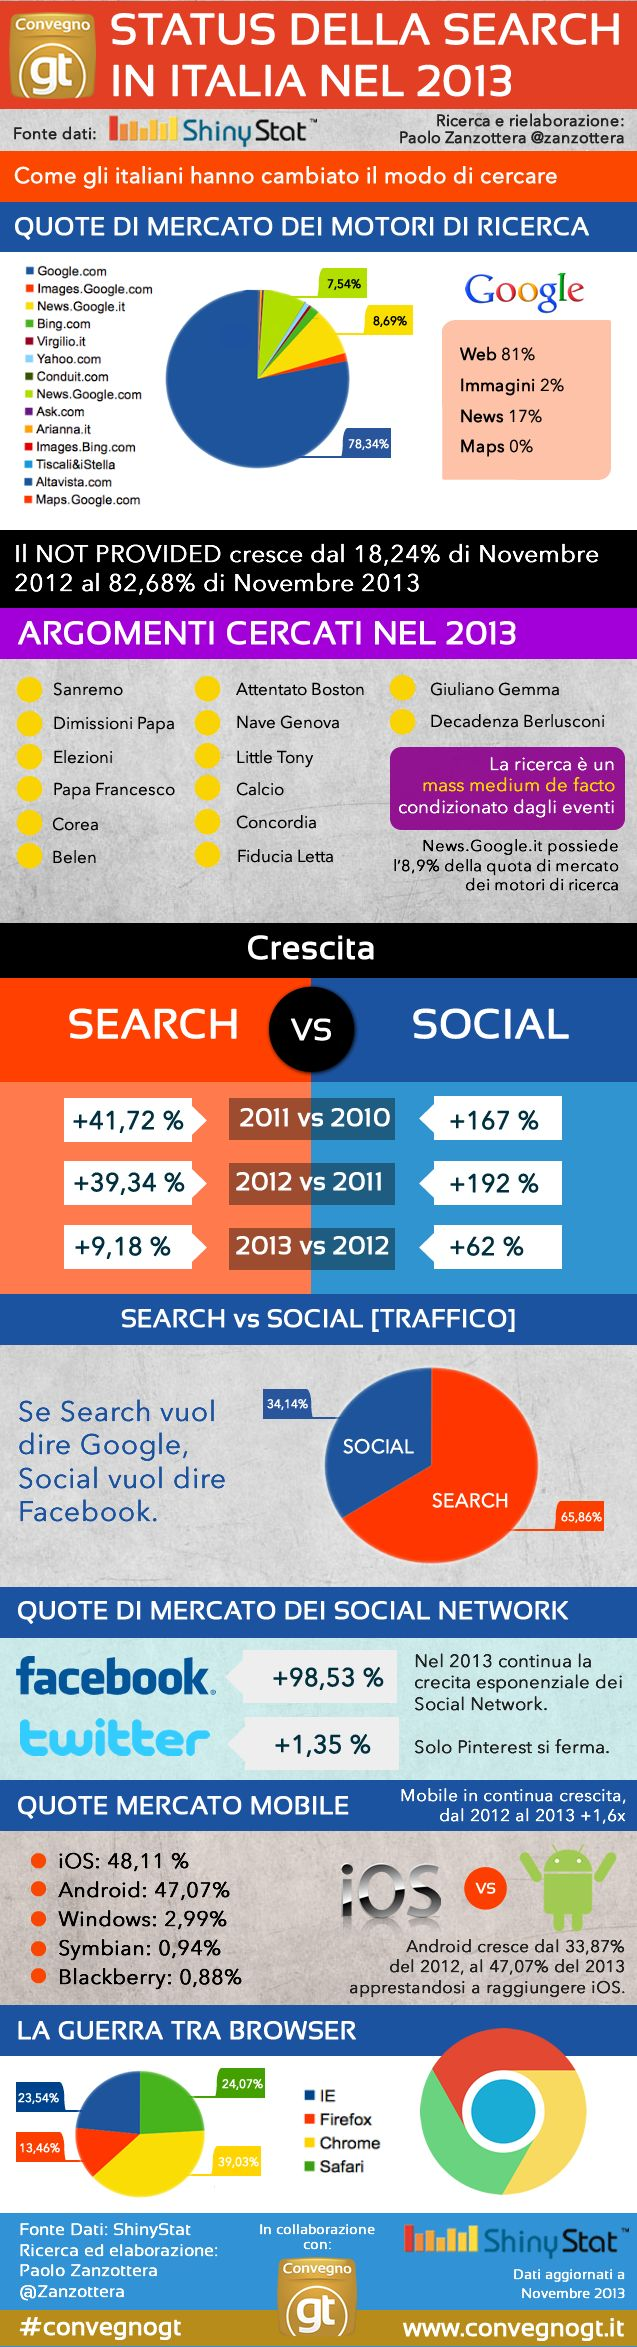 Il Search Marketing in Italia nel 2013.  I dati sono elaborati da Paolo Zanzottera di ShinyStat, in collaborazione con l'8° Convegno Nazionale sul Search Marketing. #Search #SEO #SSO